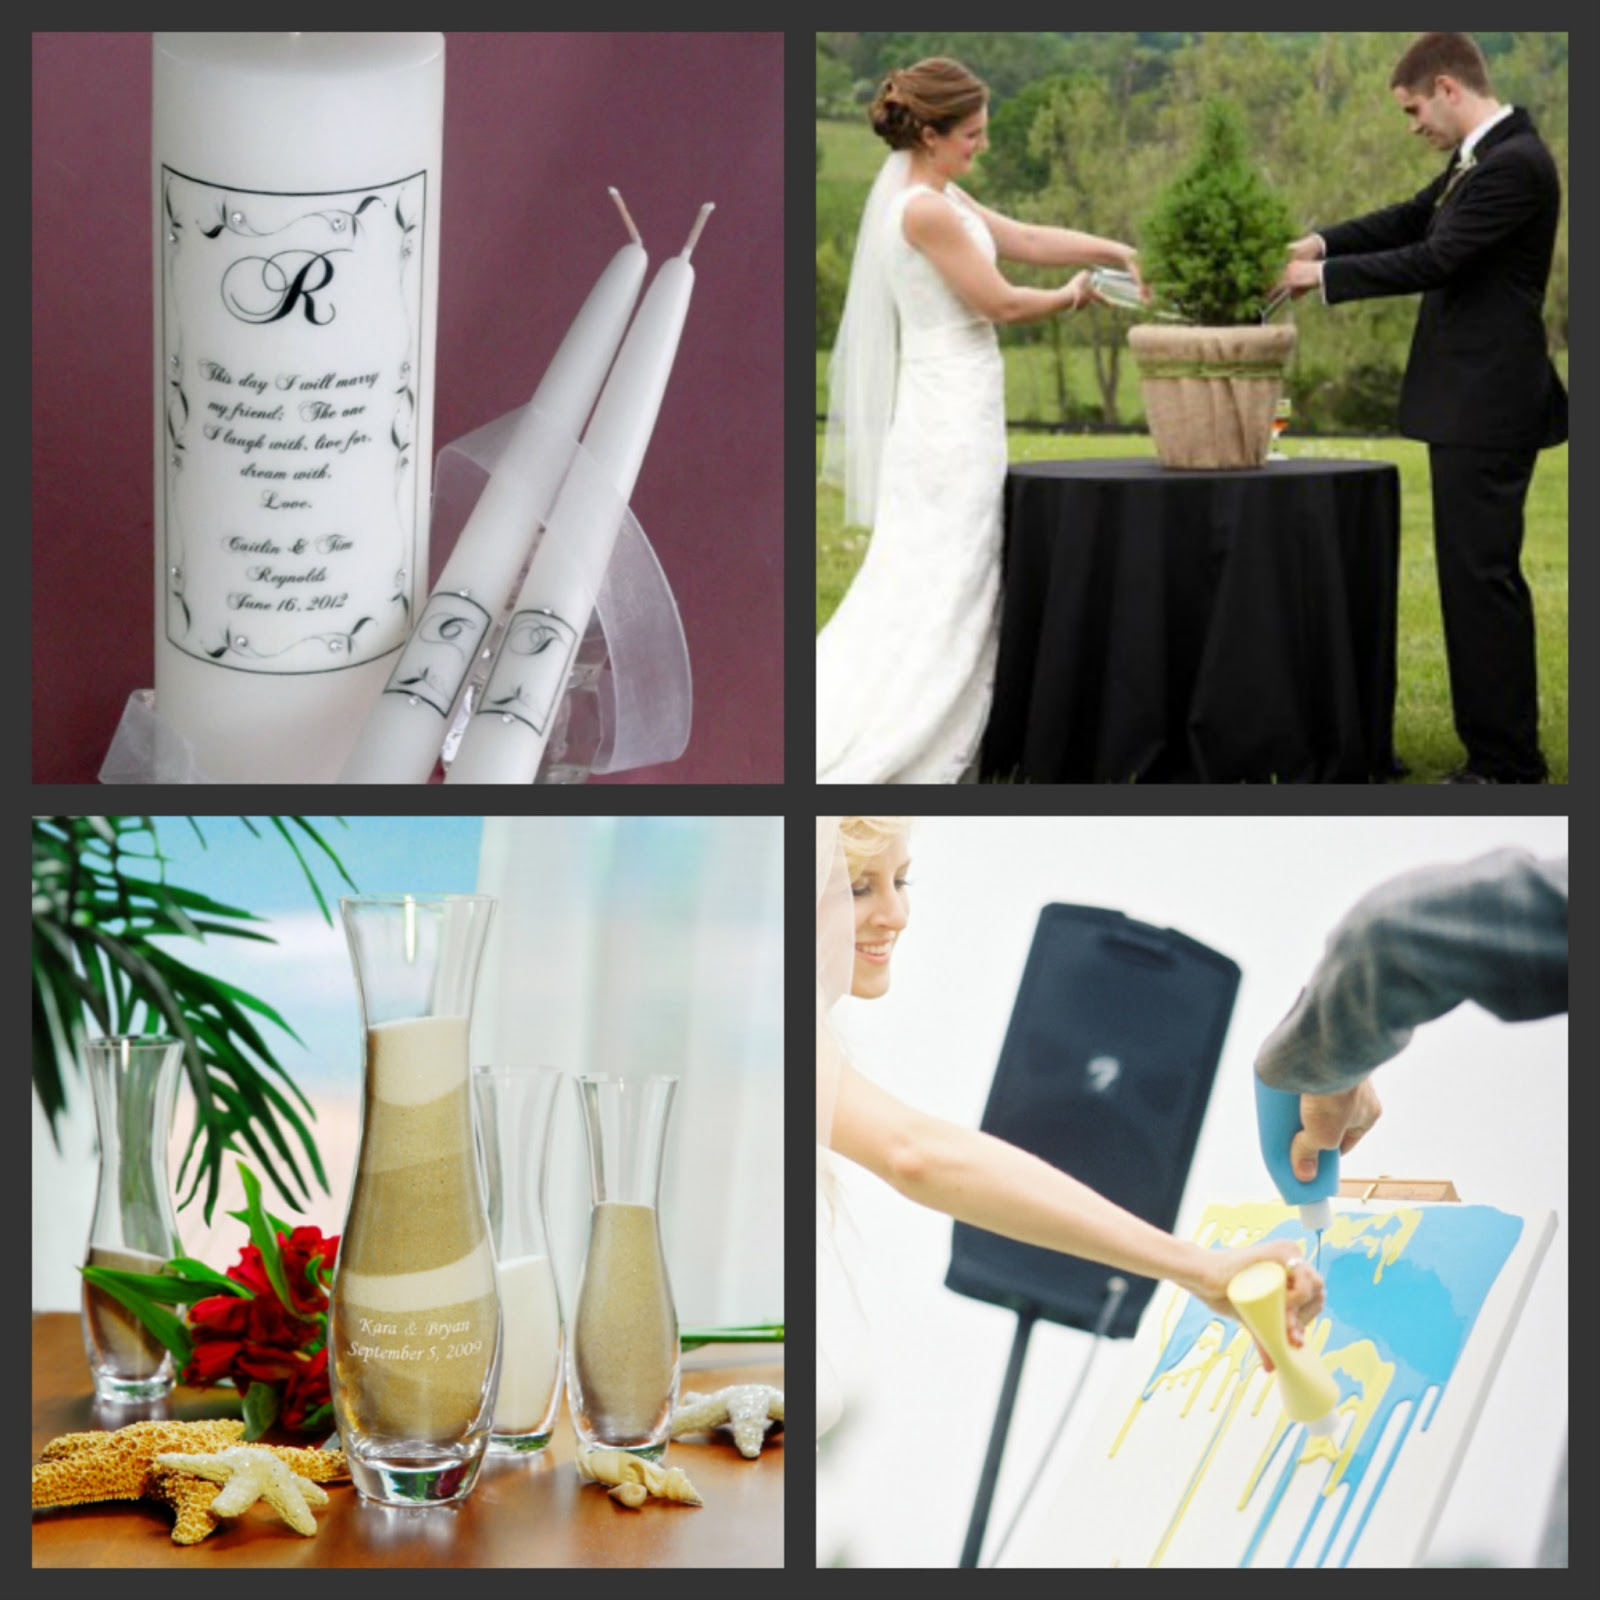 Weddings Are Fun Blog Unity Ceremony Ideas For Your Wedding